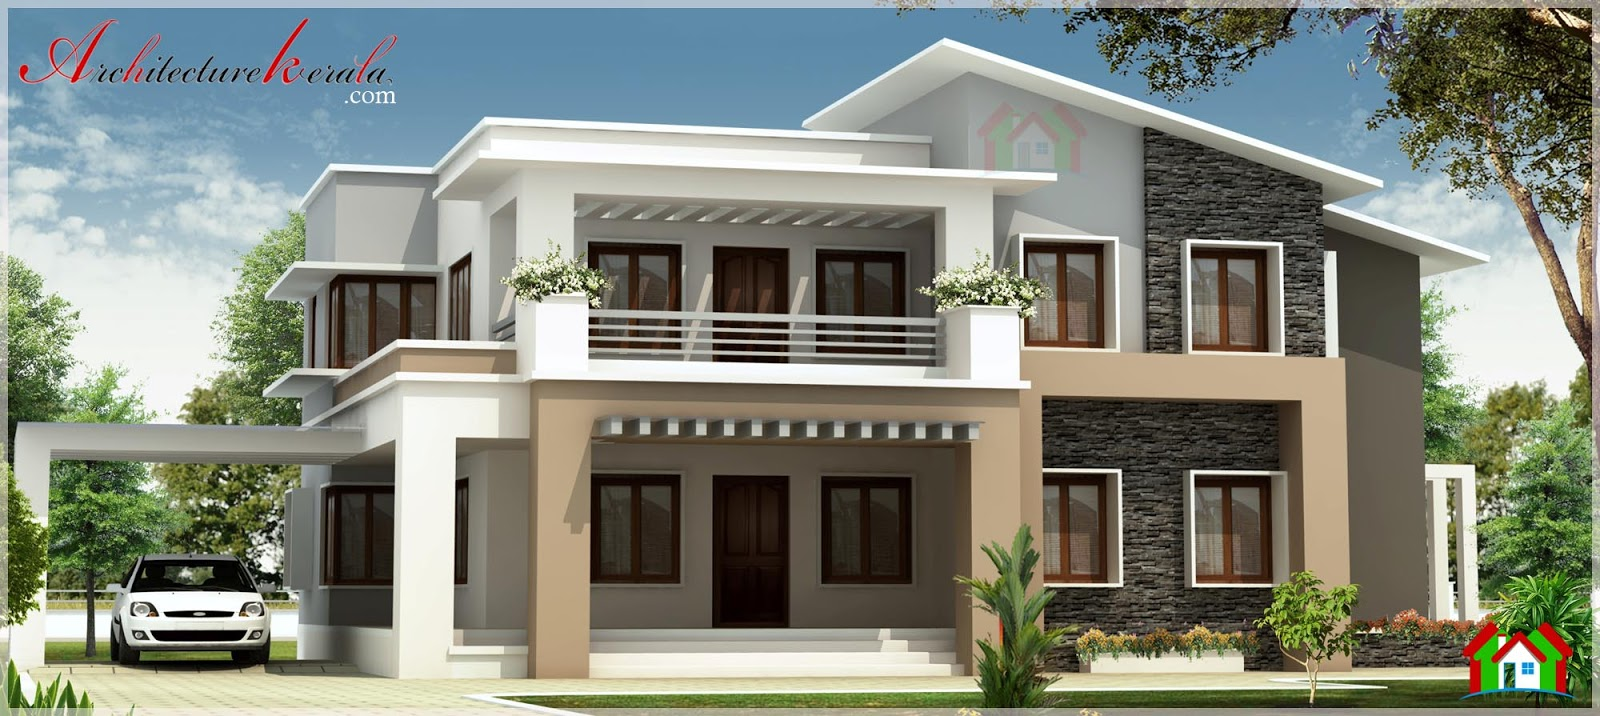 3000 sqft kerala home architecture kerala for 3000 sq ft house cost